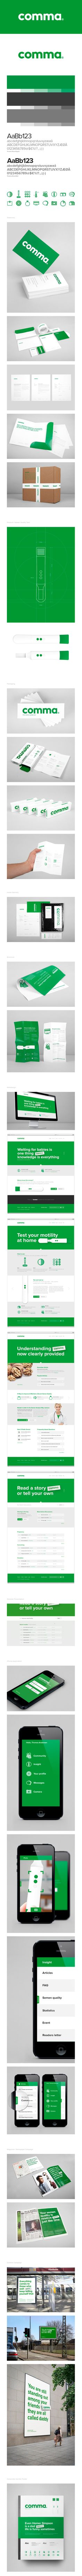 Comma on Behance. A very long #packaging #branding #marketing | #stationary #corporate #design #corporatedesign #logo #identity #branding #marketing <<< repinned by an #advertising agency from #Hamburg / #Germany - www.BlickeDeeler.de | Follow us on www.facebook.com/BlickeDeeler